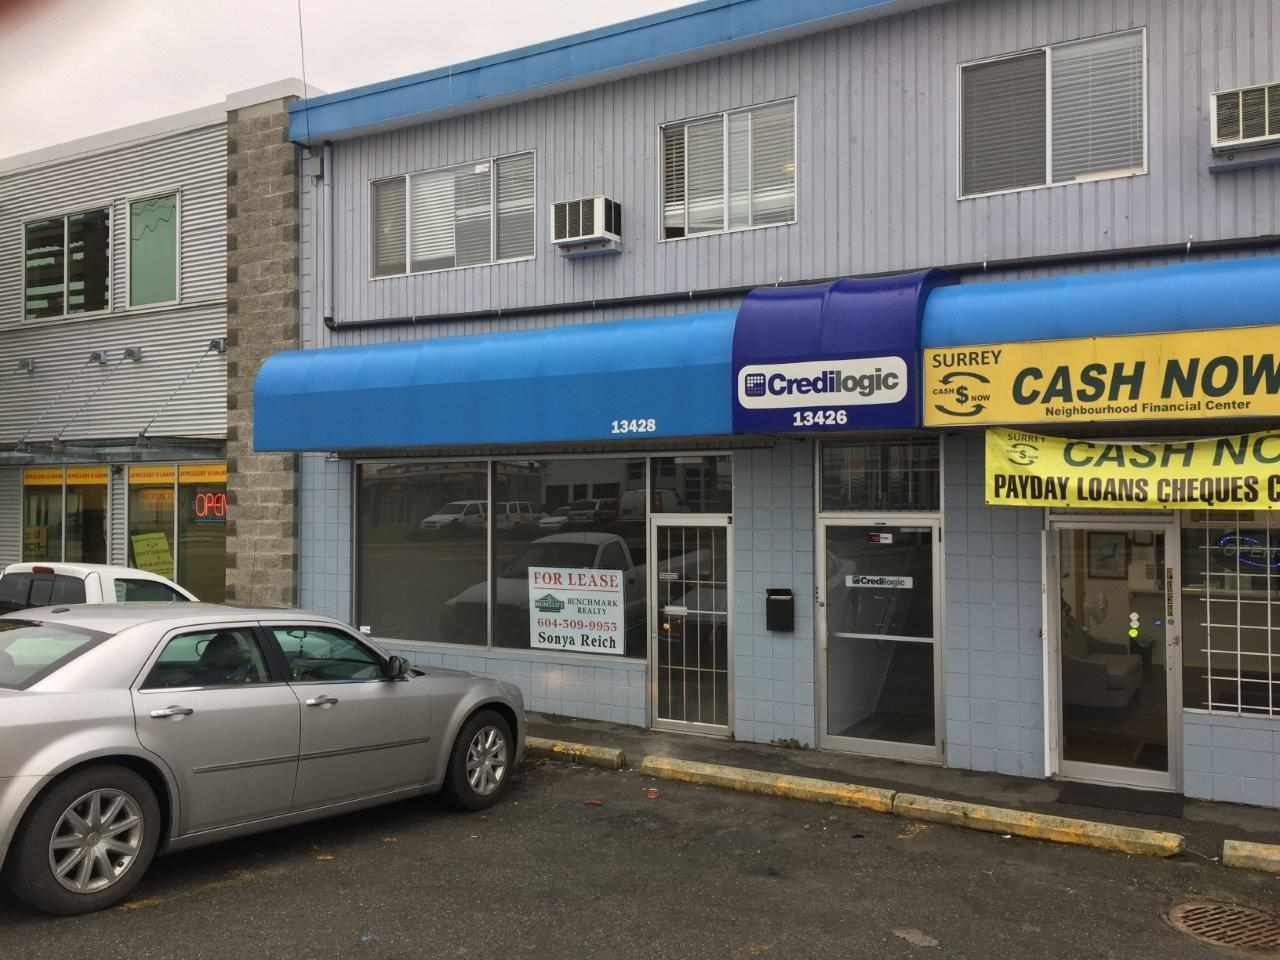 """""""FOR LEASE"""" 792 SF, 2nd level Office Space fronting 72 Ave with high foot traffic. Base rent at $10.00/sf/annum and additional rent at $6.00 (2016)/sf/annum & comes with 2 designated parking stalls. Easy to show."""